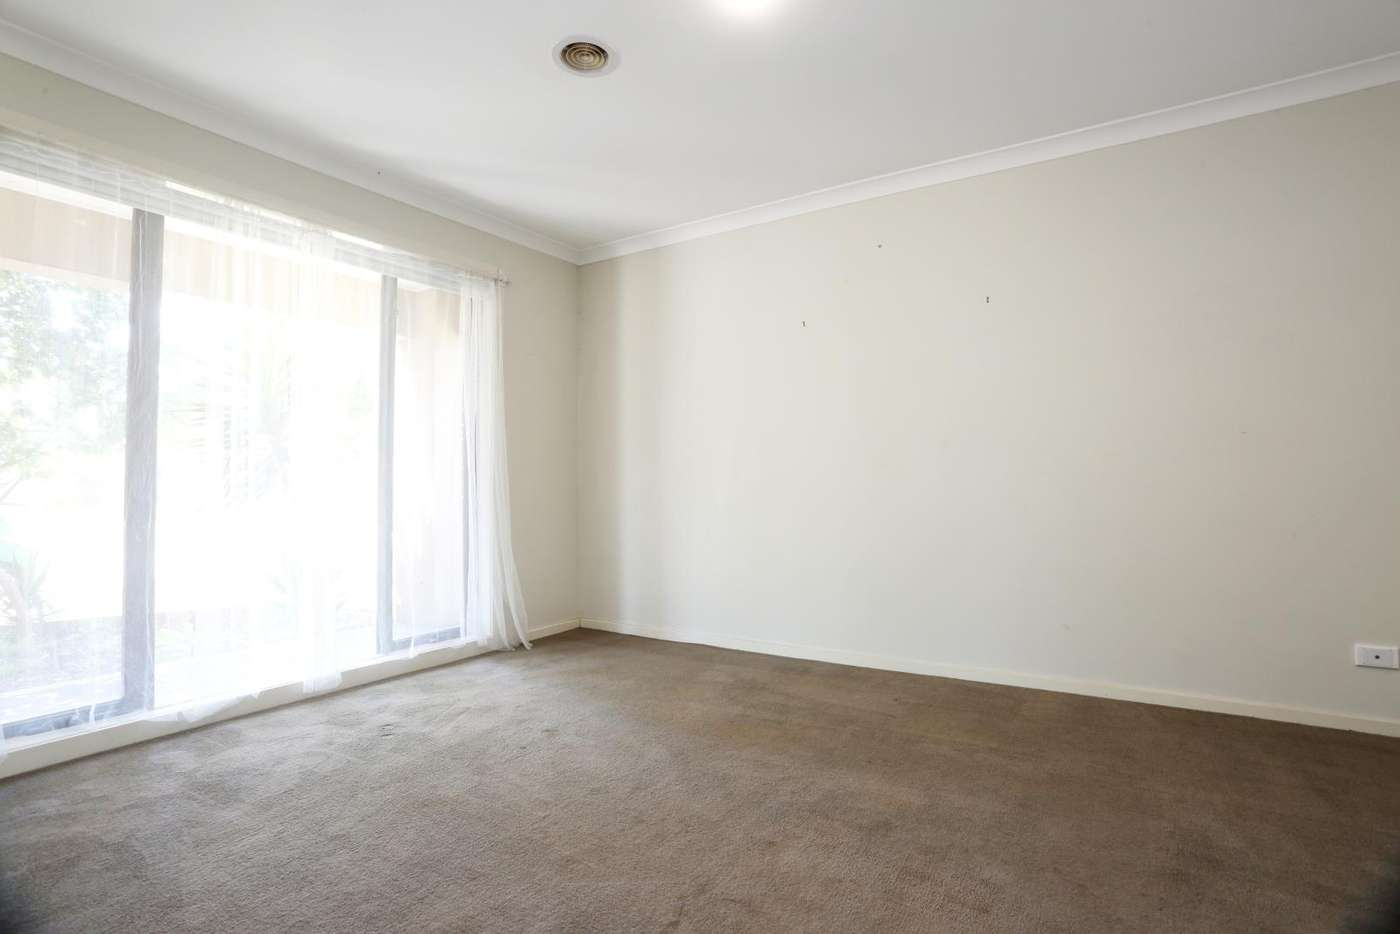 Fifth view of Homely house listing, 3 Butler Grove, Wyndham Vale VIC 3024